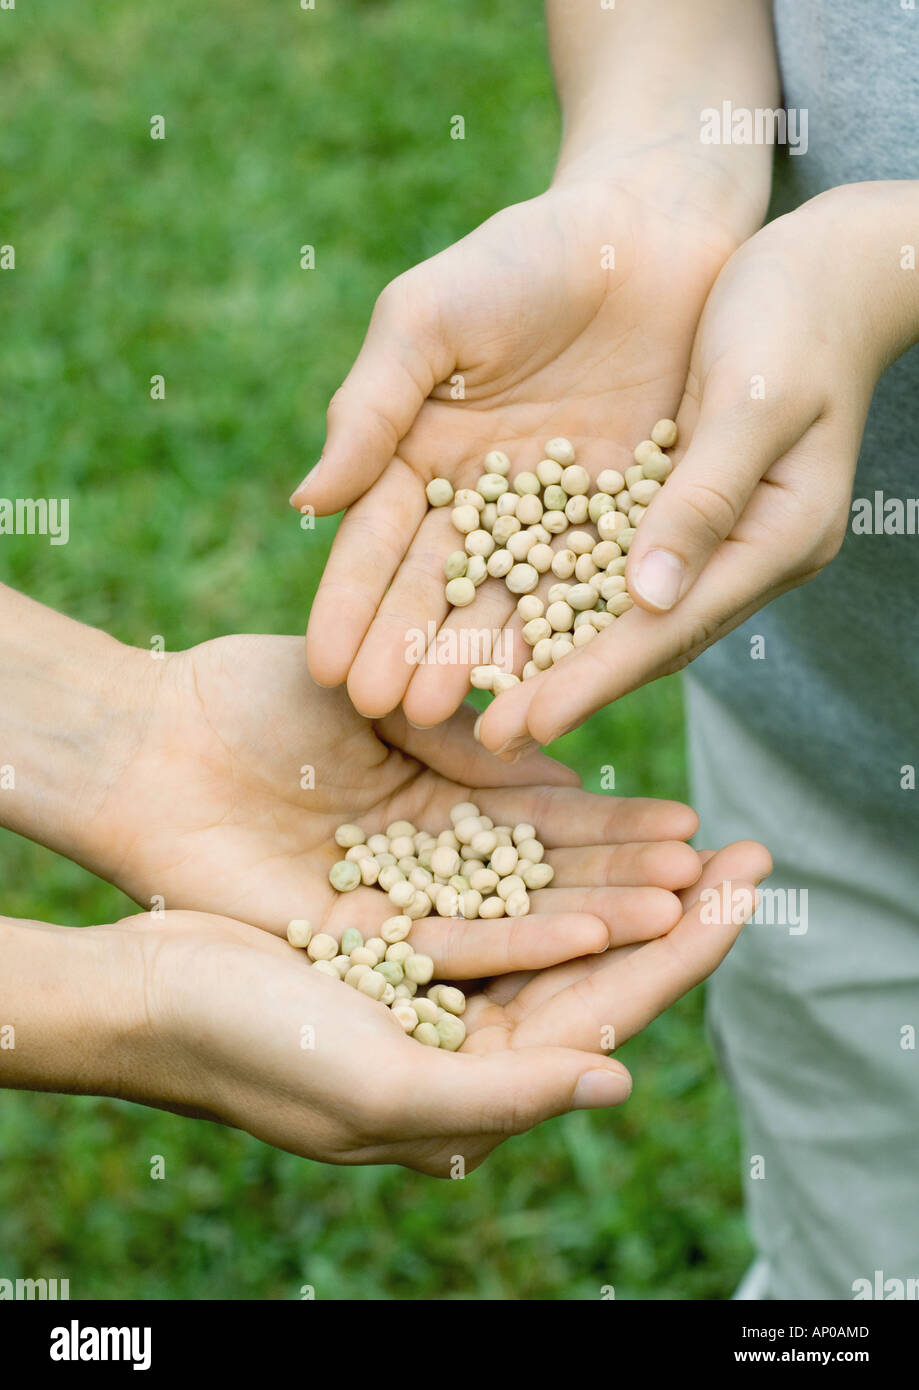 One person pouring seeds into second person's hands - Stock Image